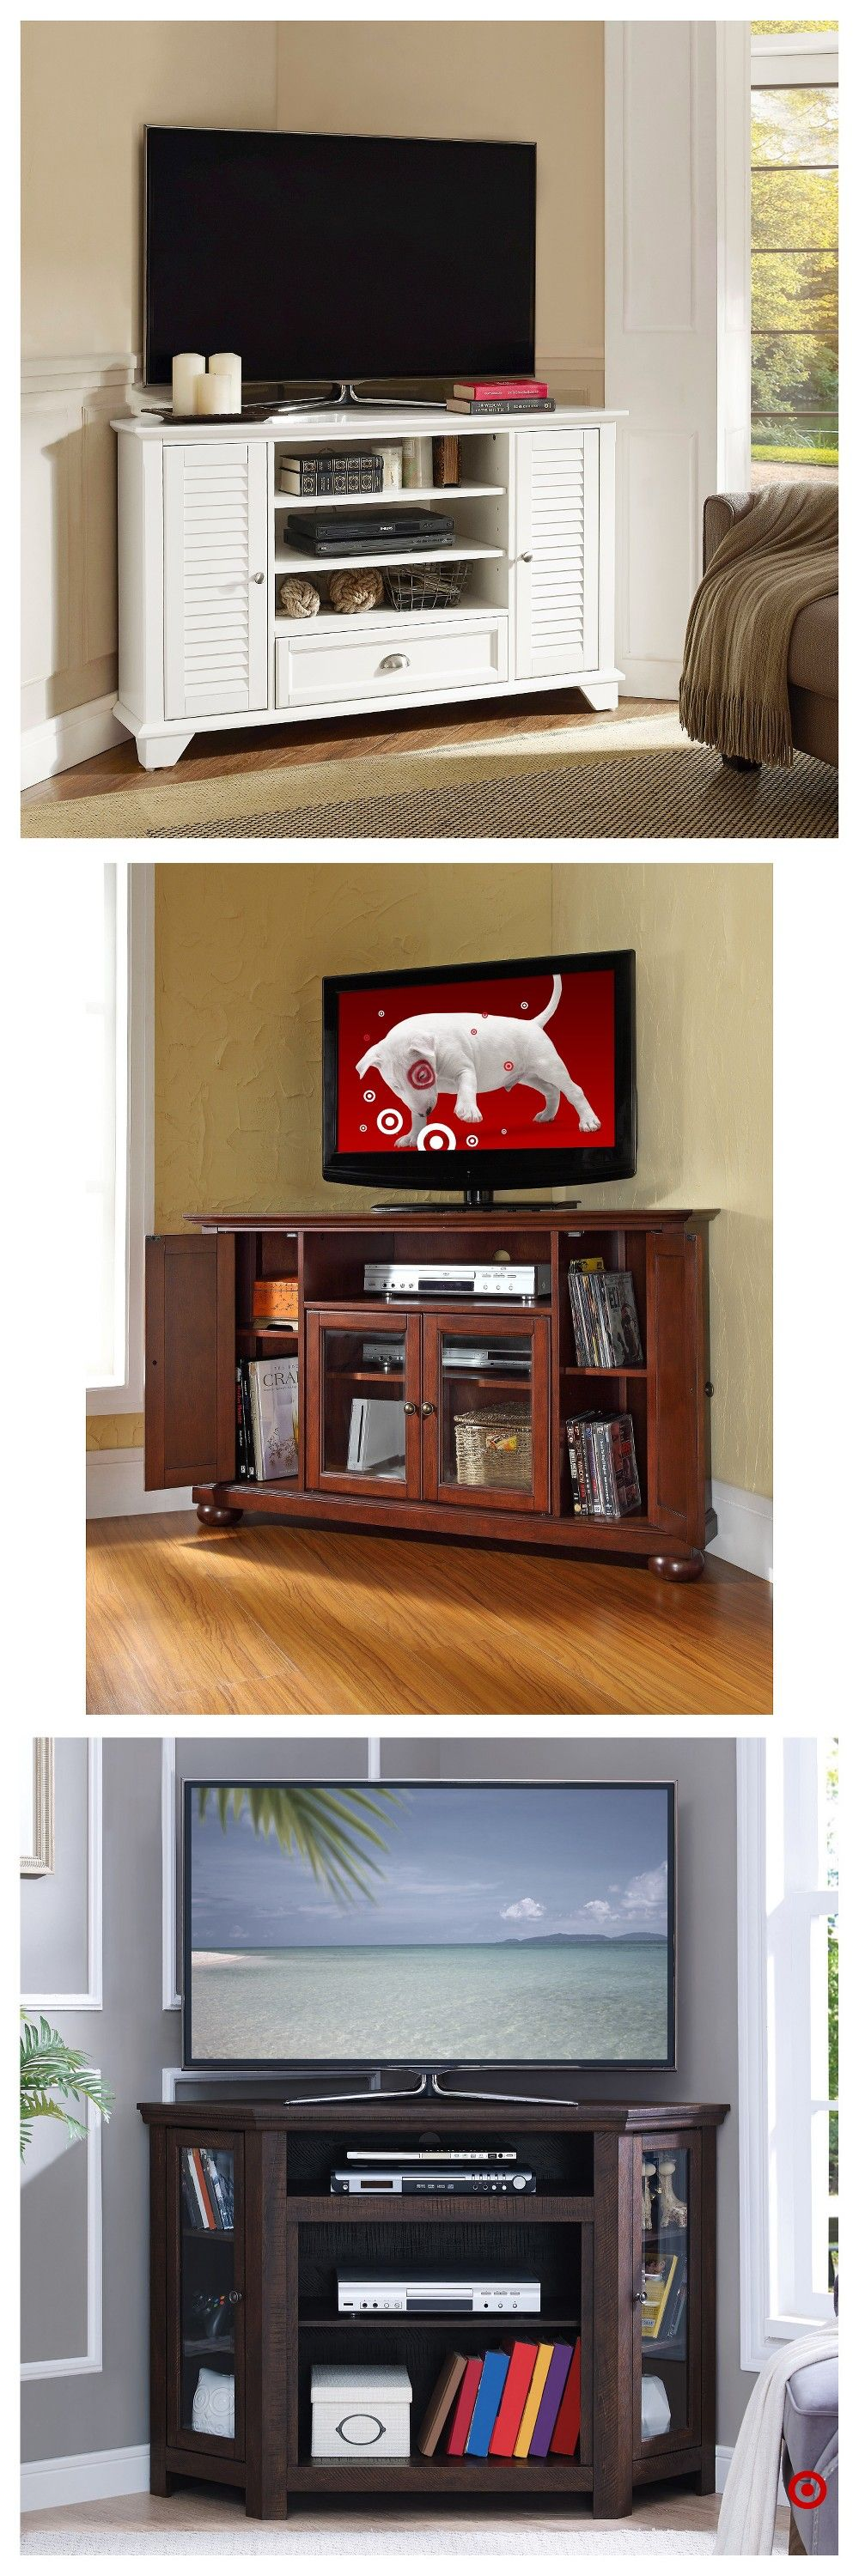 Shop Target For Corner Tv Stand You Will Love At Great Low Prices